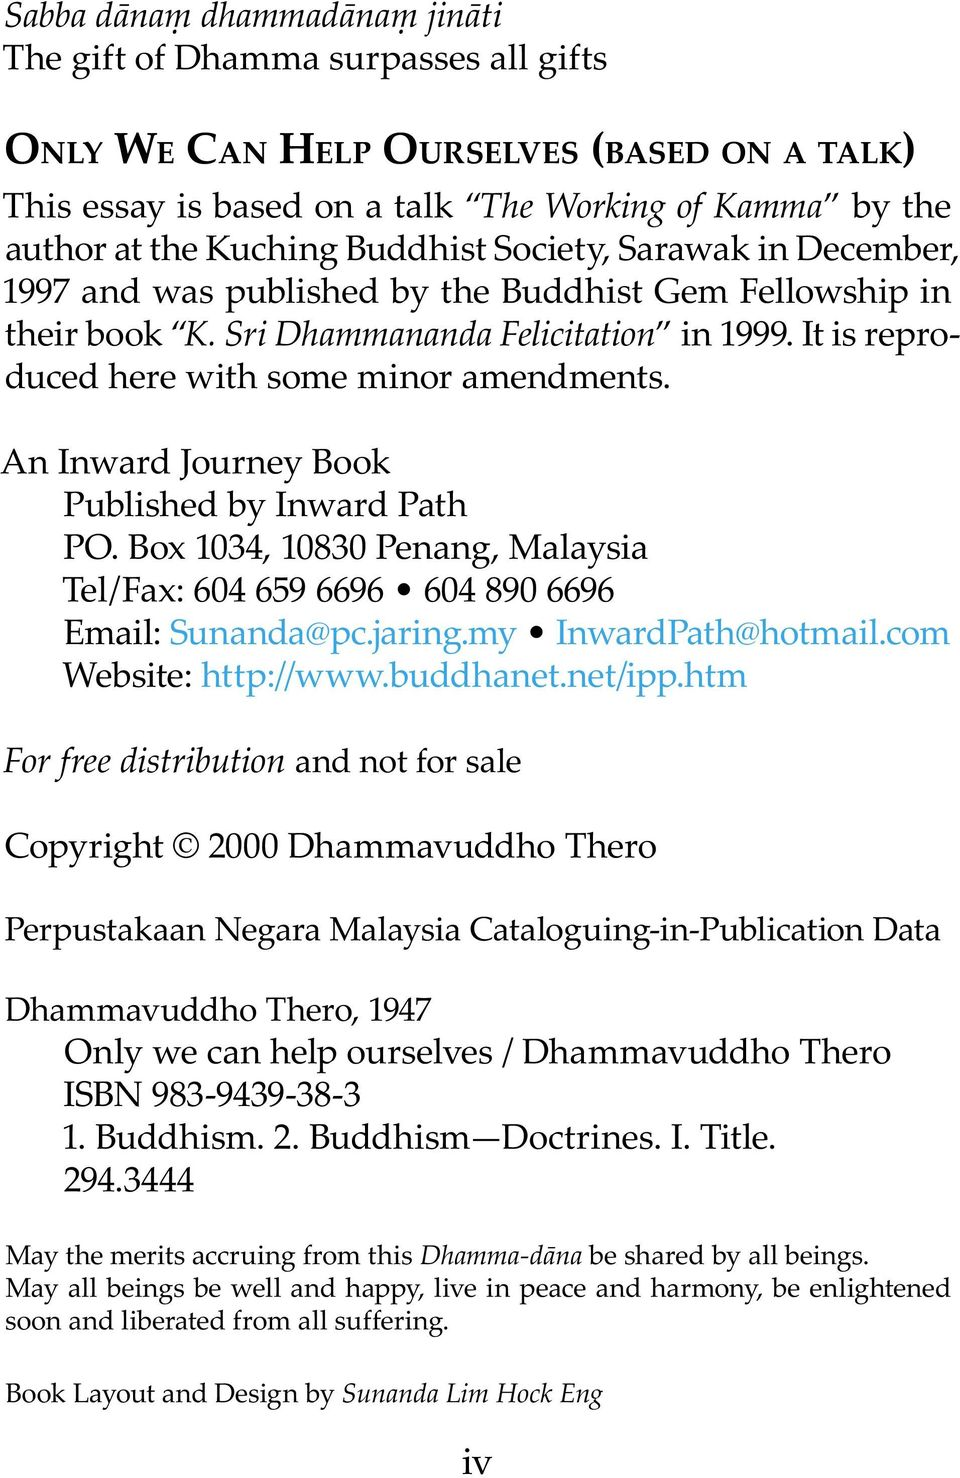 An Inward Journey Book Published by Inward Path PO. Box 1034, 10830 Penang, Malaysia Tel / Fax: 604 659 6696 604 890 6696 Email: Sunanda@pc.jaring.my InwardPath@hotmail.com Website: http://www.